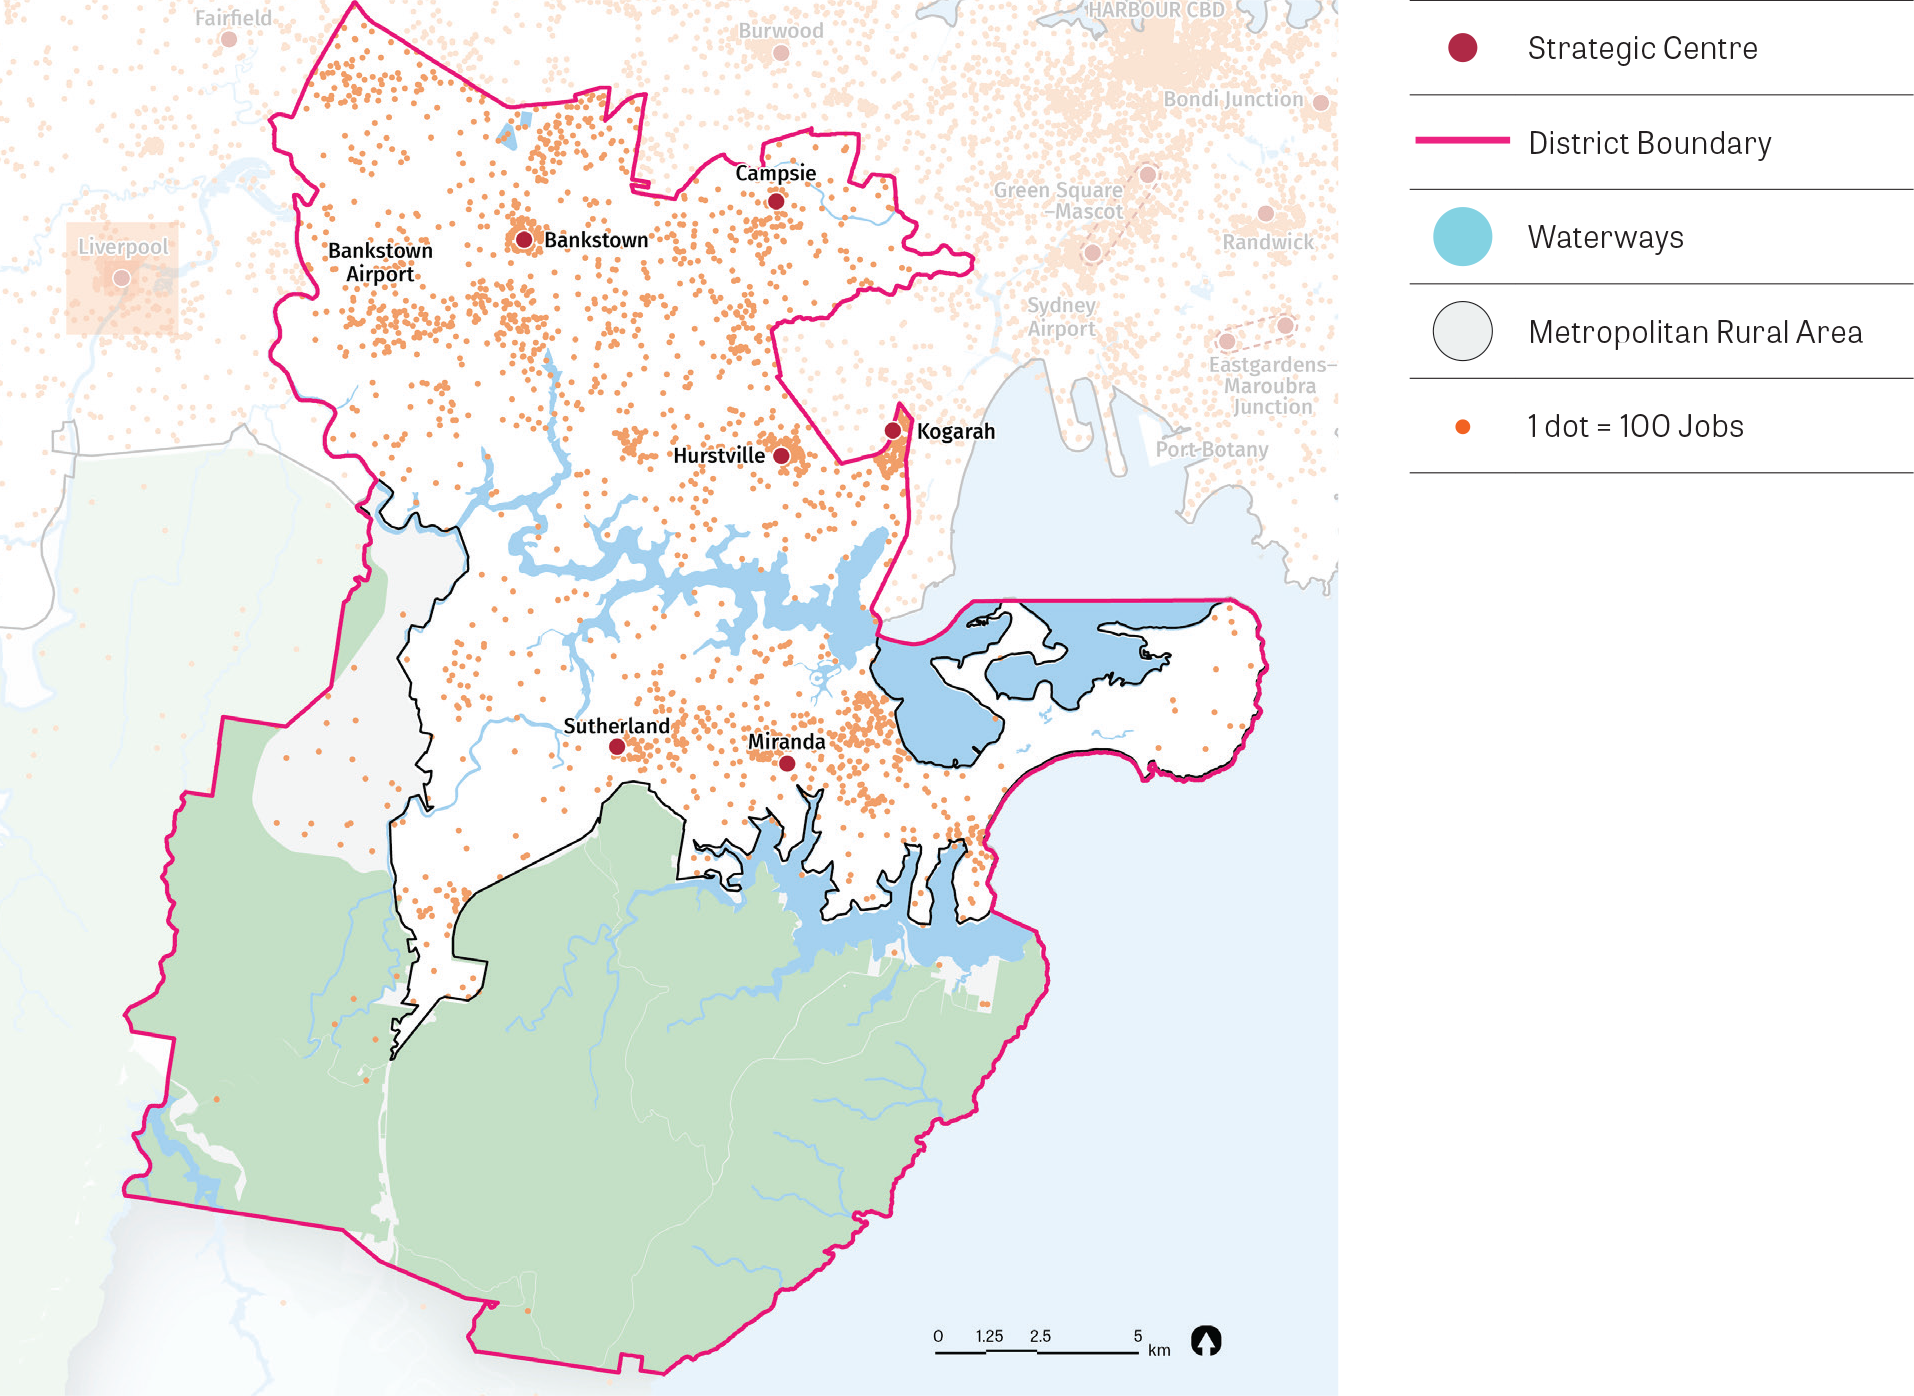 A map showing job density within the South District. The highest job concentrations are near Kogarah, Bankstown, Hurstville, Miranda, Sutherland and Campsie. The map also shows waterways, protected natural areas and metropolitan rural areas.